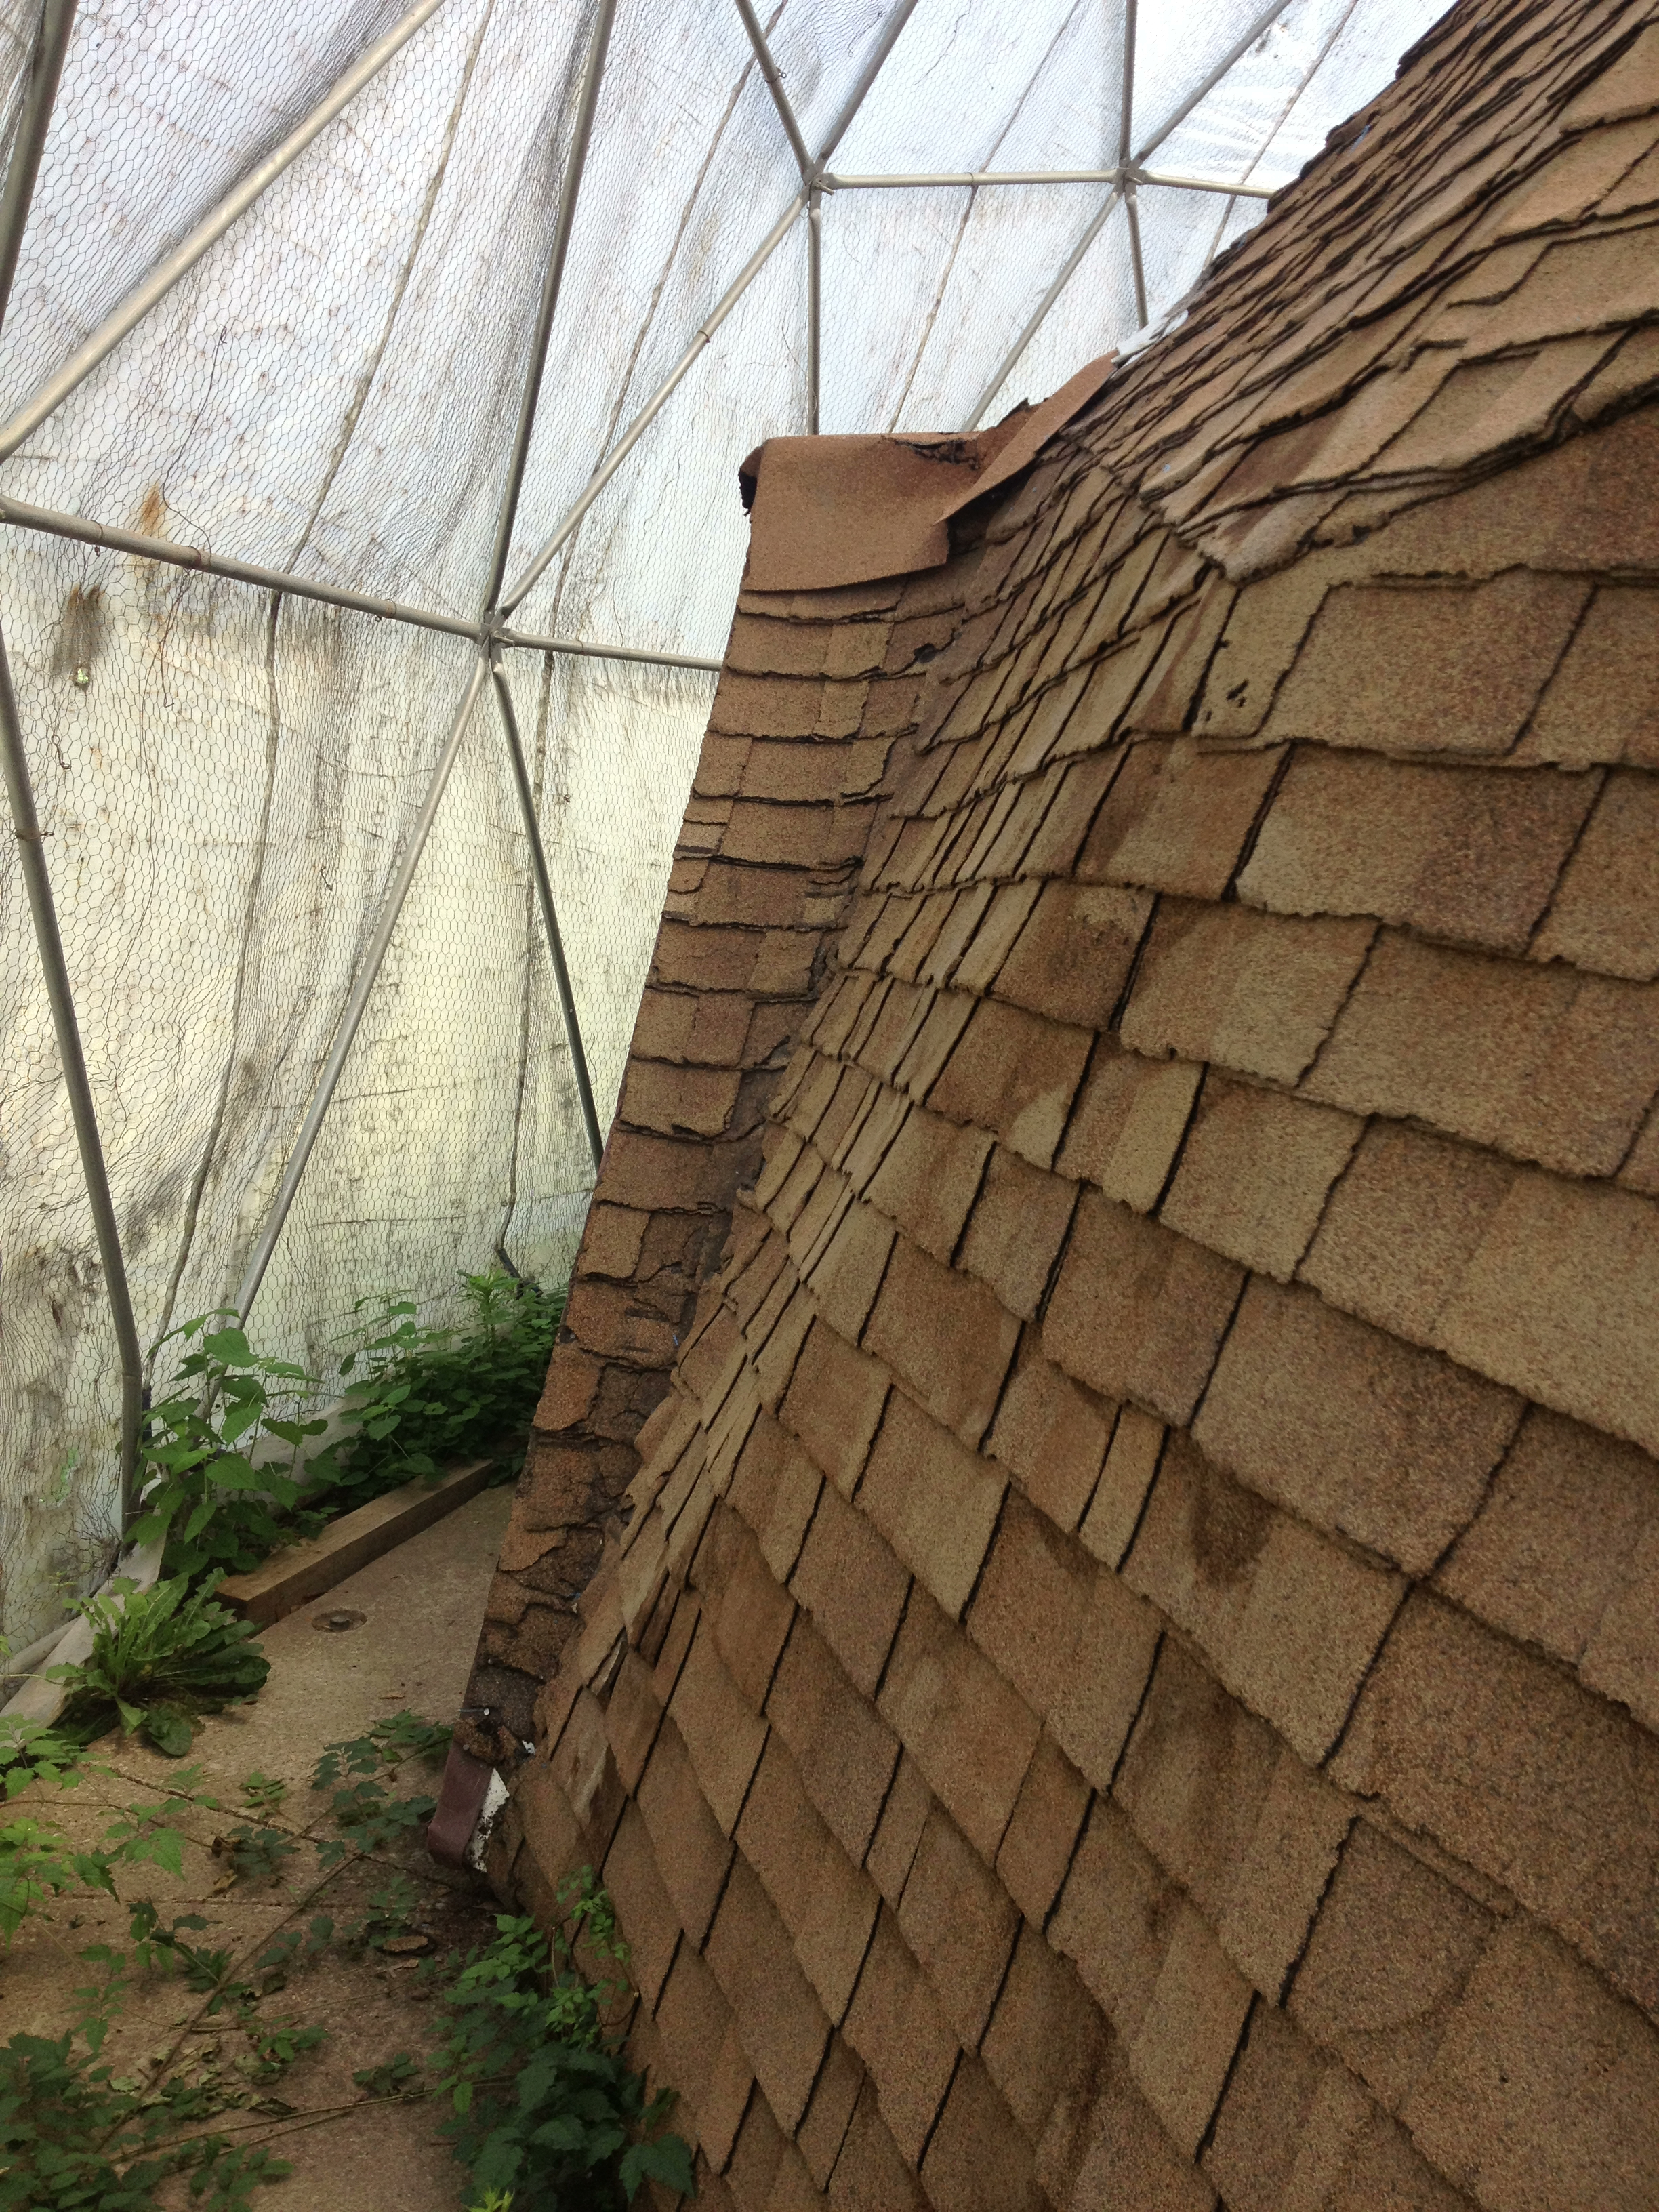 The shingles were in bad shape, and the foundation slab was cracked all over the place.